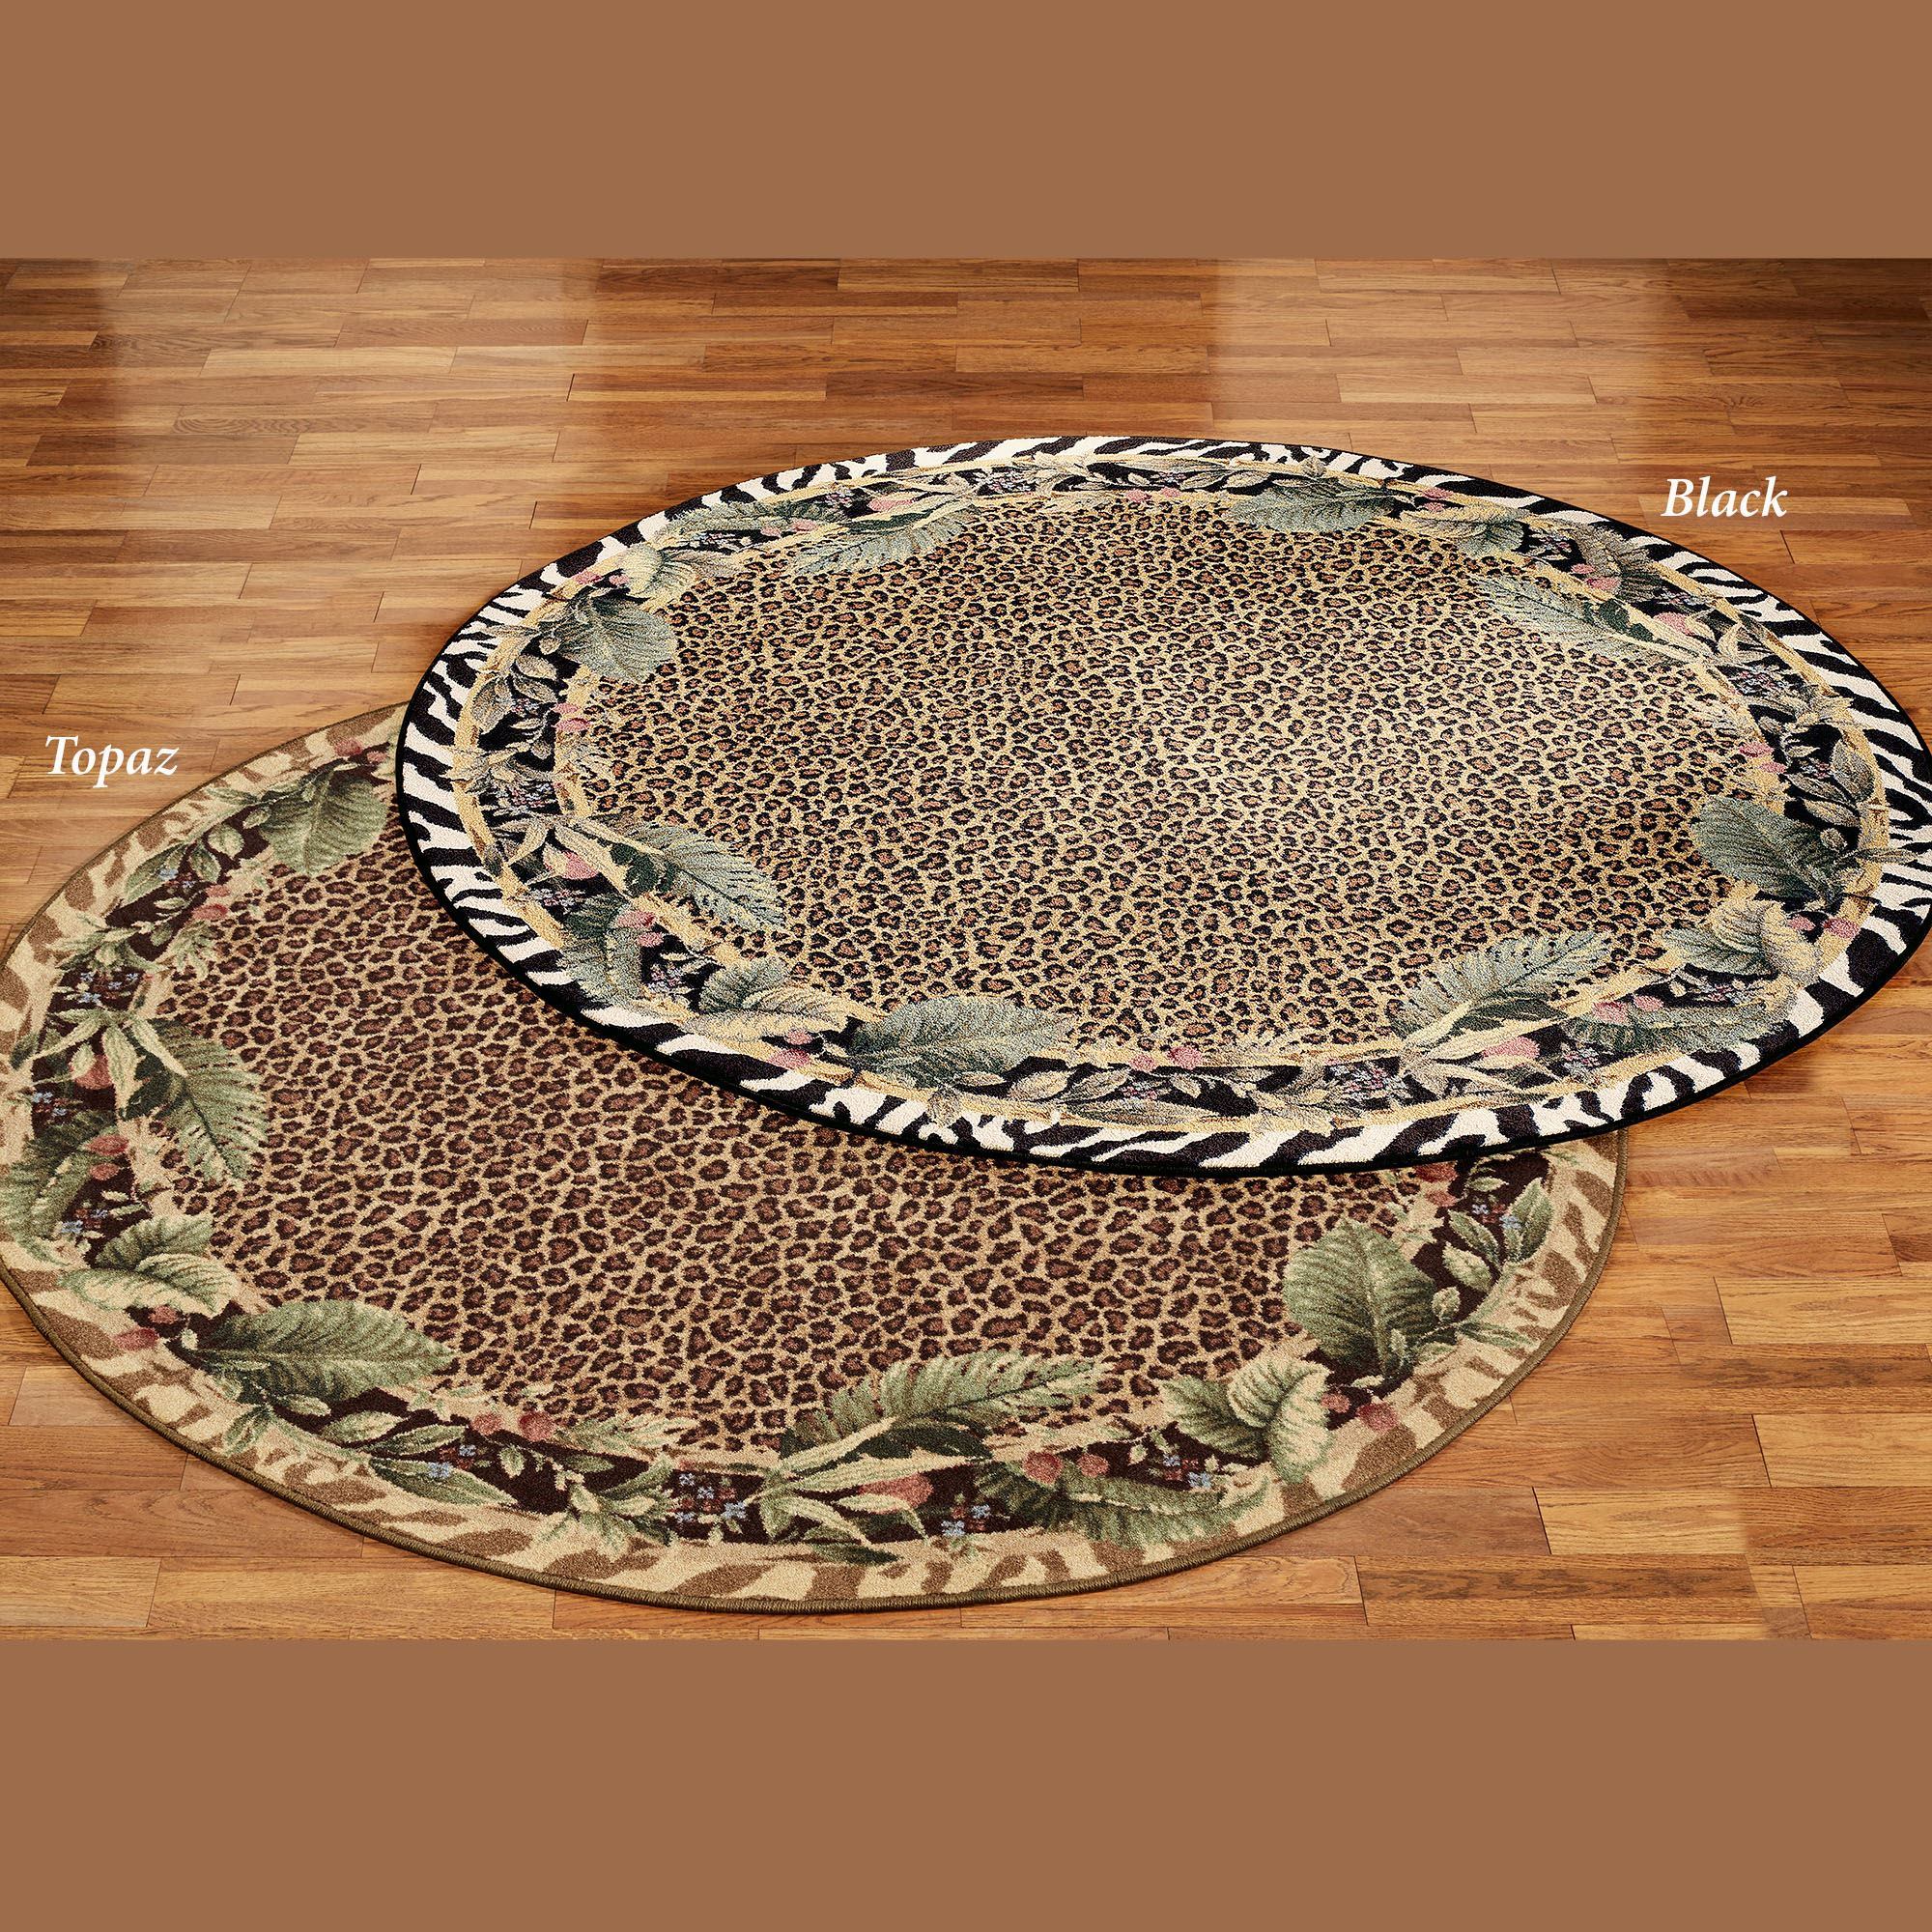 Jungle Safari Animal Print Round Area Rug